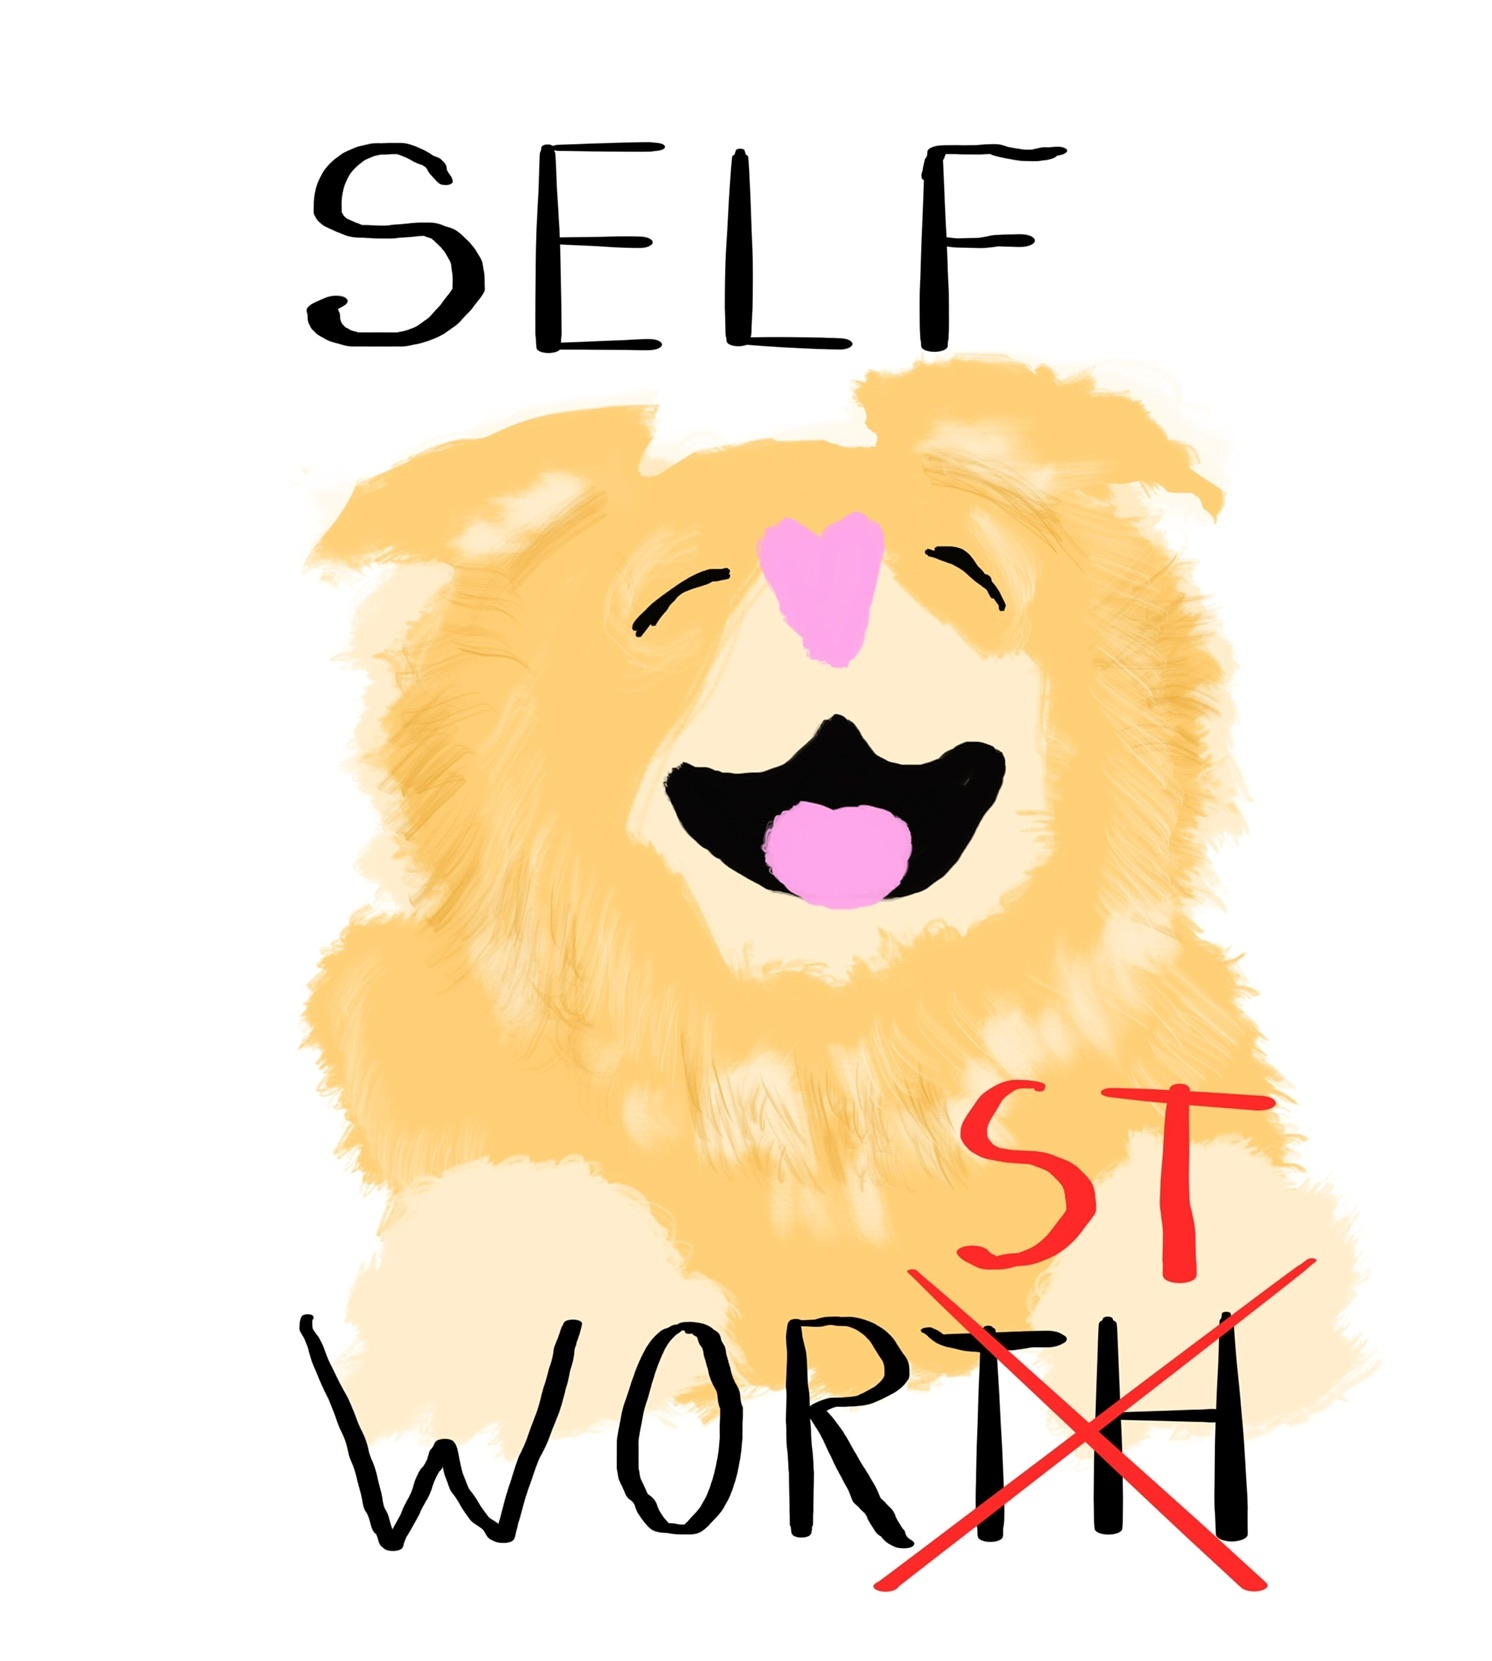 Self Worst podcast - Molly Brenner Is Coming